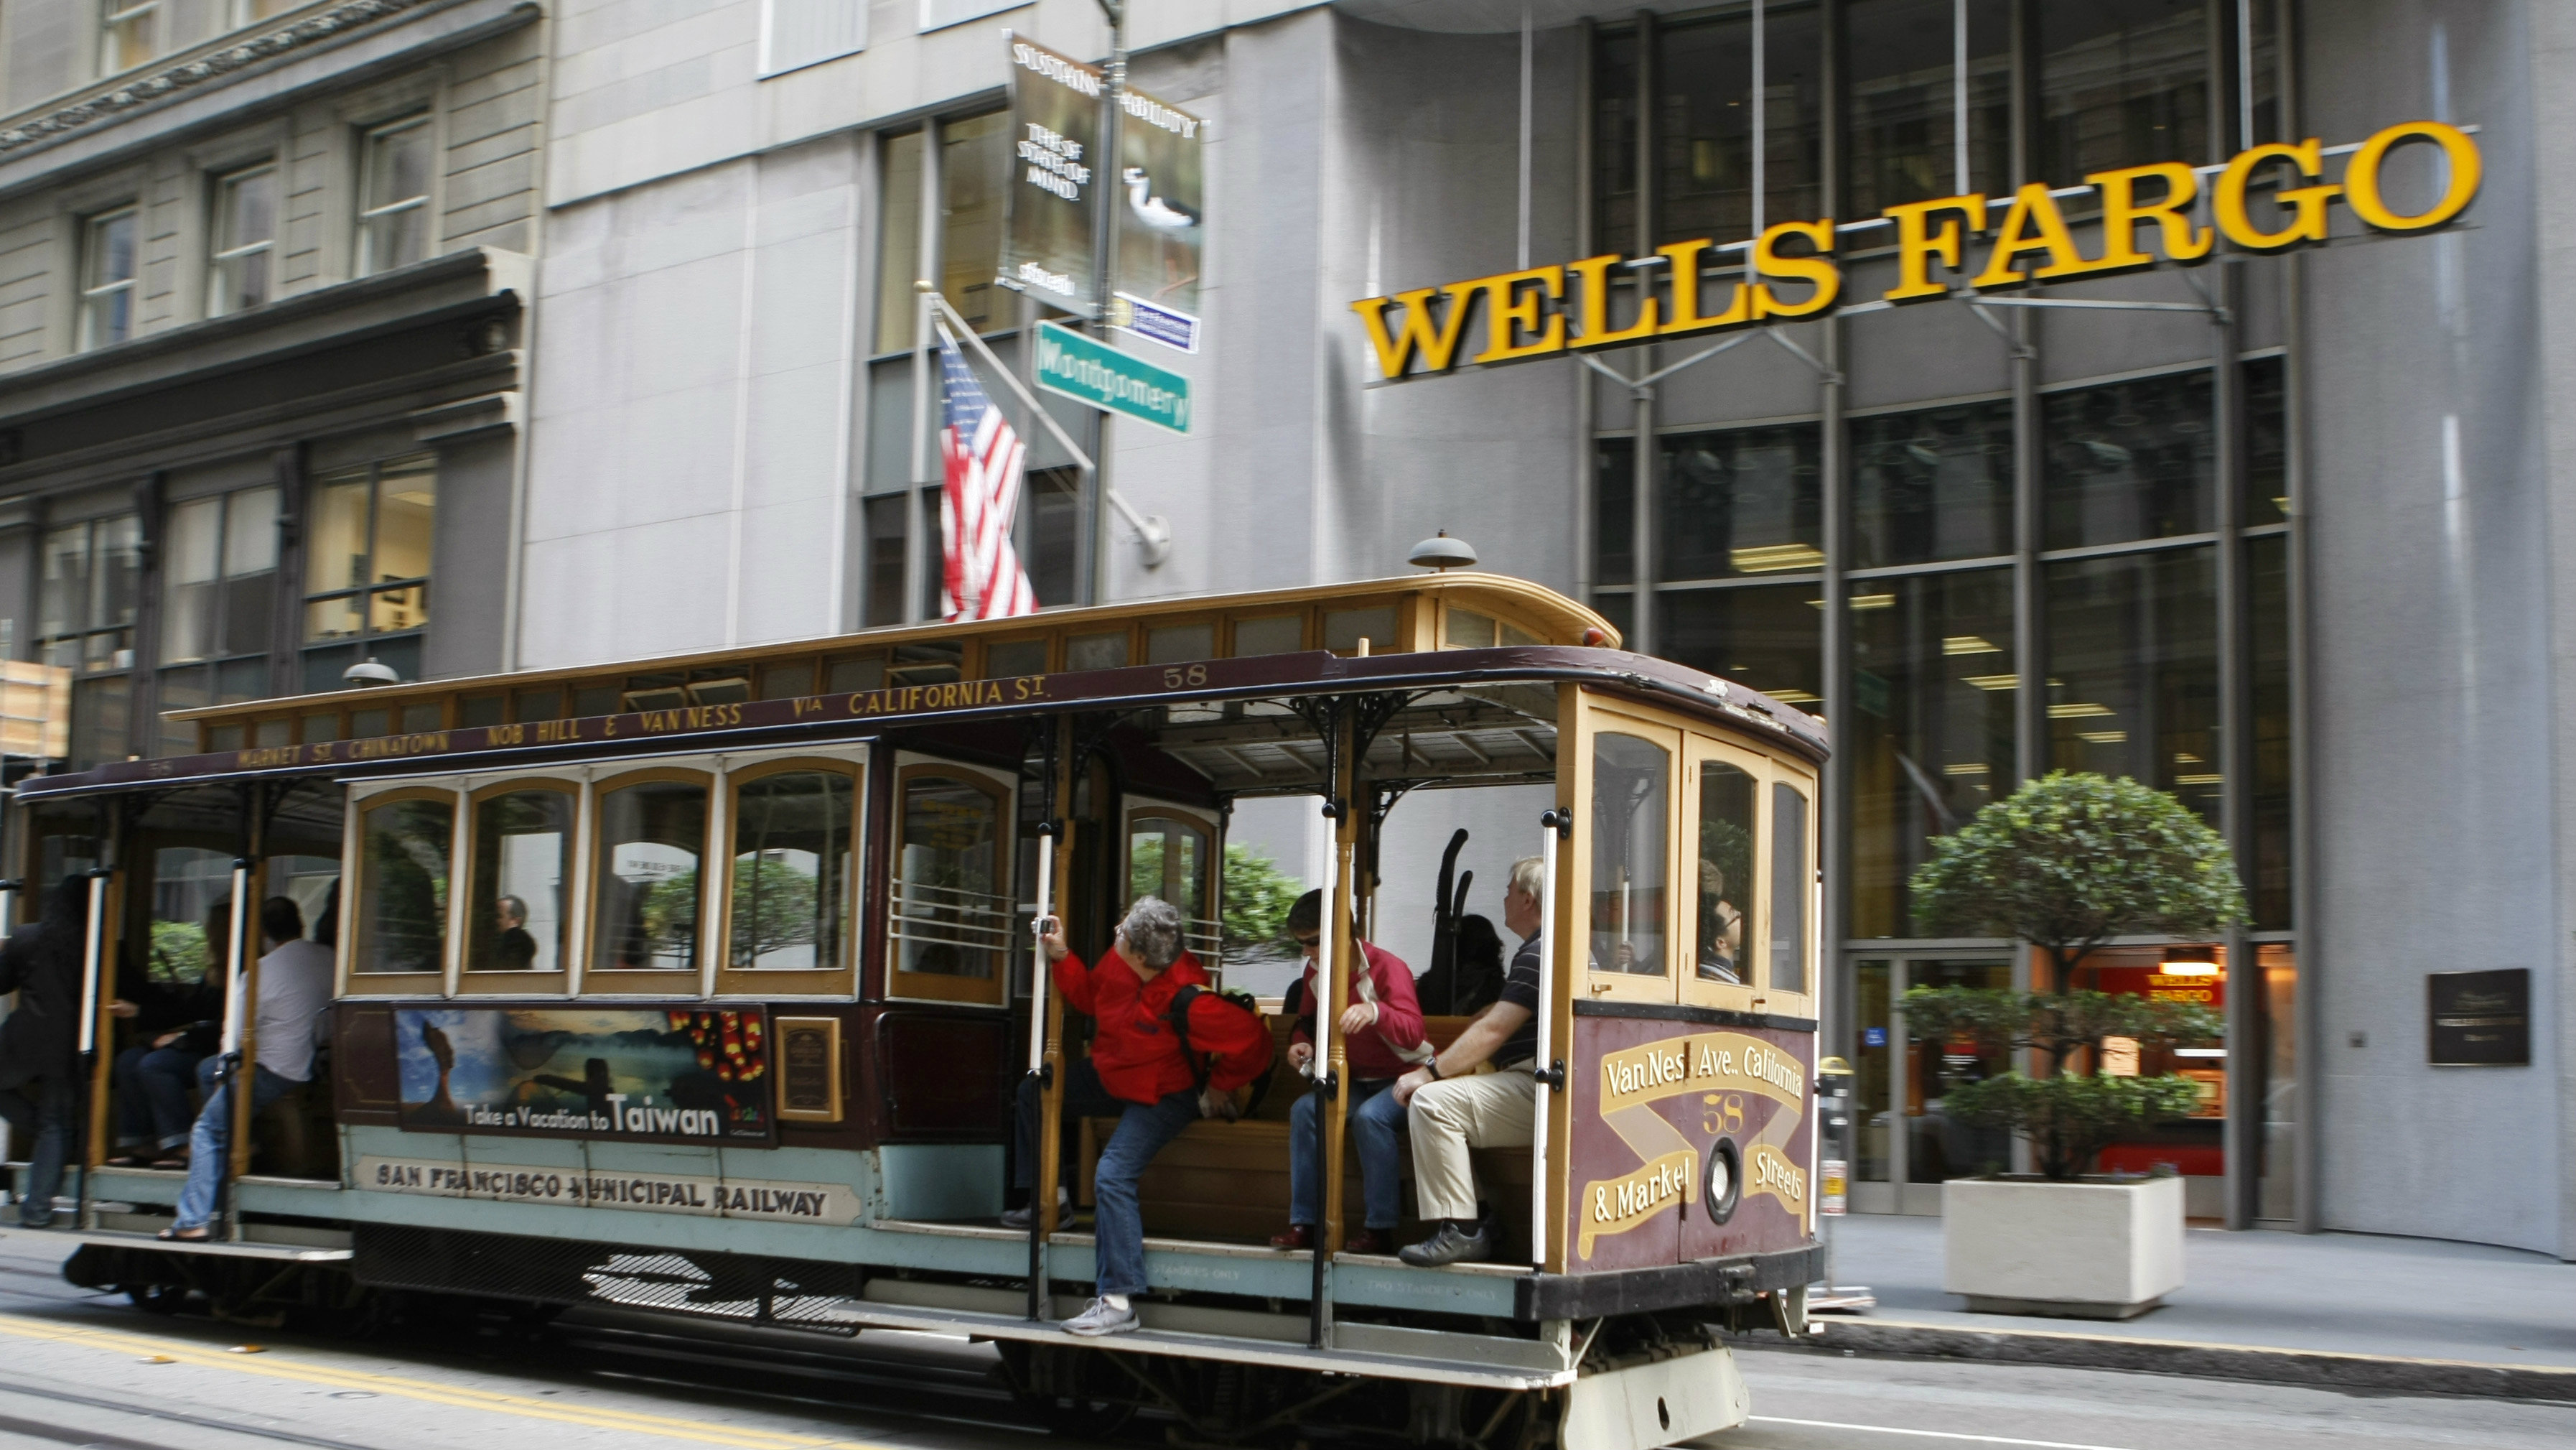 Trolley passes a Wells Fargo Bank in downtown San Francisco